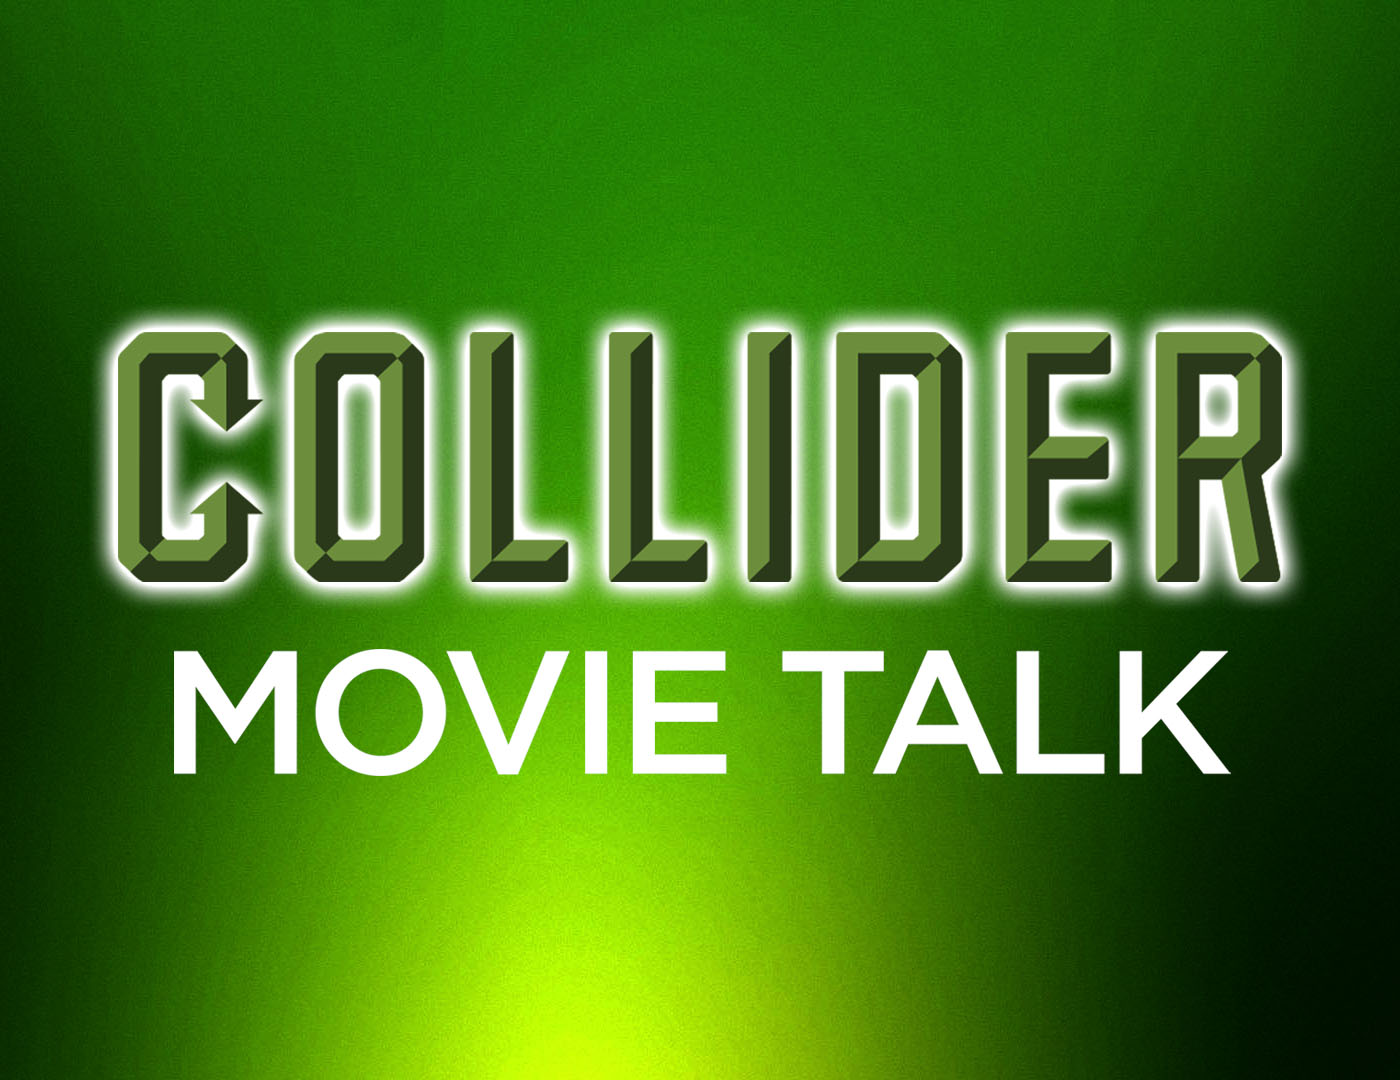 Collider Movie Talk - Star Wars: The Force Awakens Changing Film Marketing